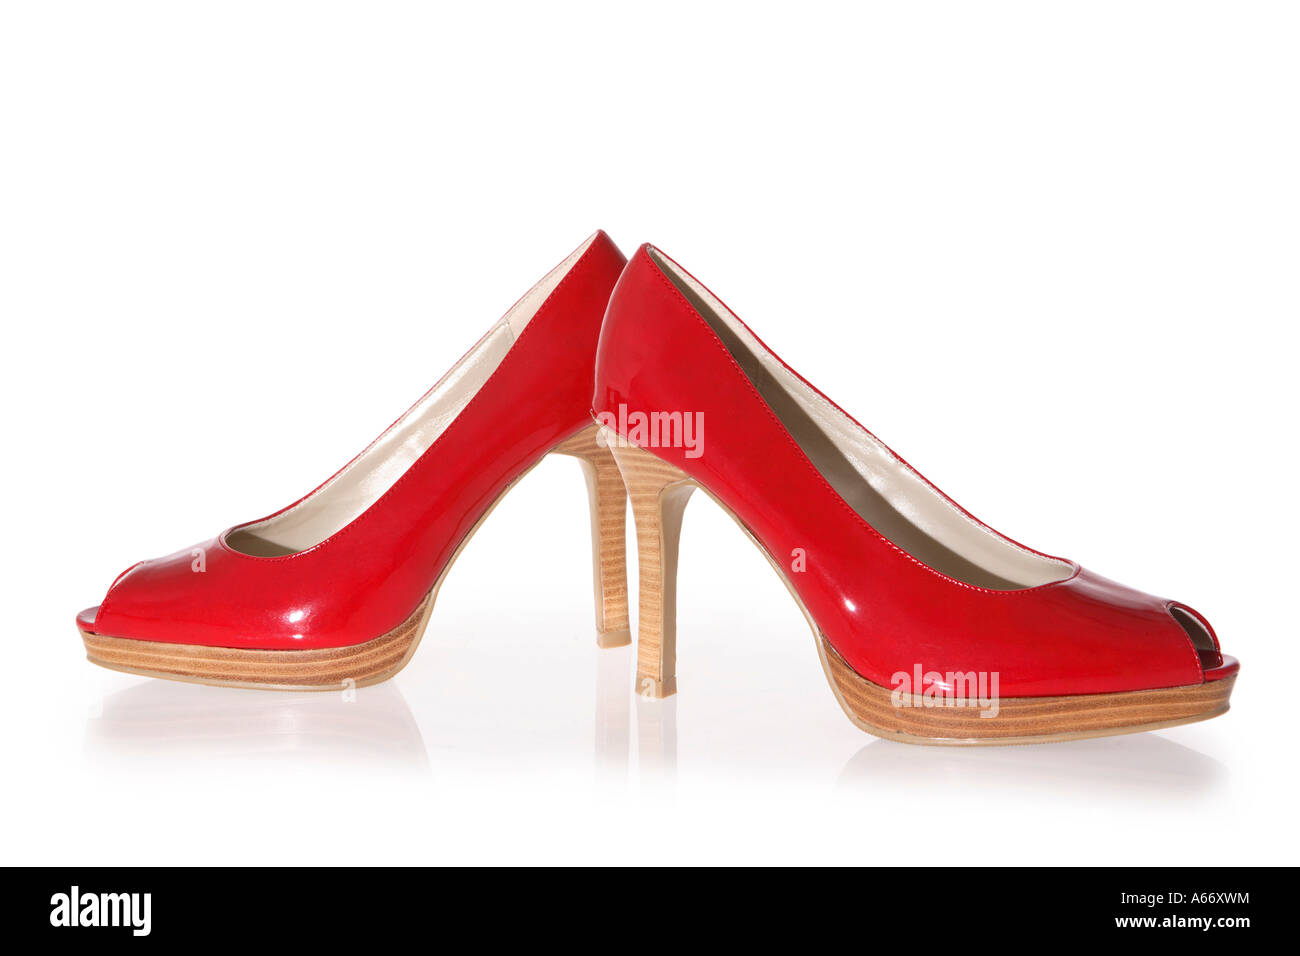 4f1ffa56b3c High Heel Stock Photos & High Heel Stock Images - Alamy